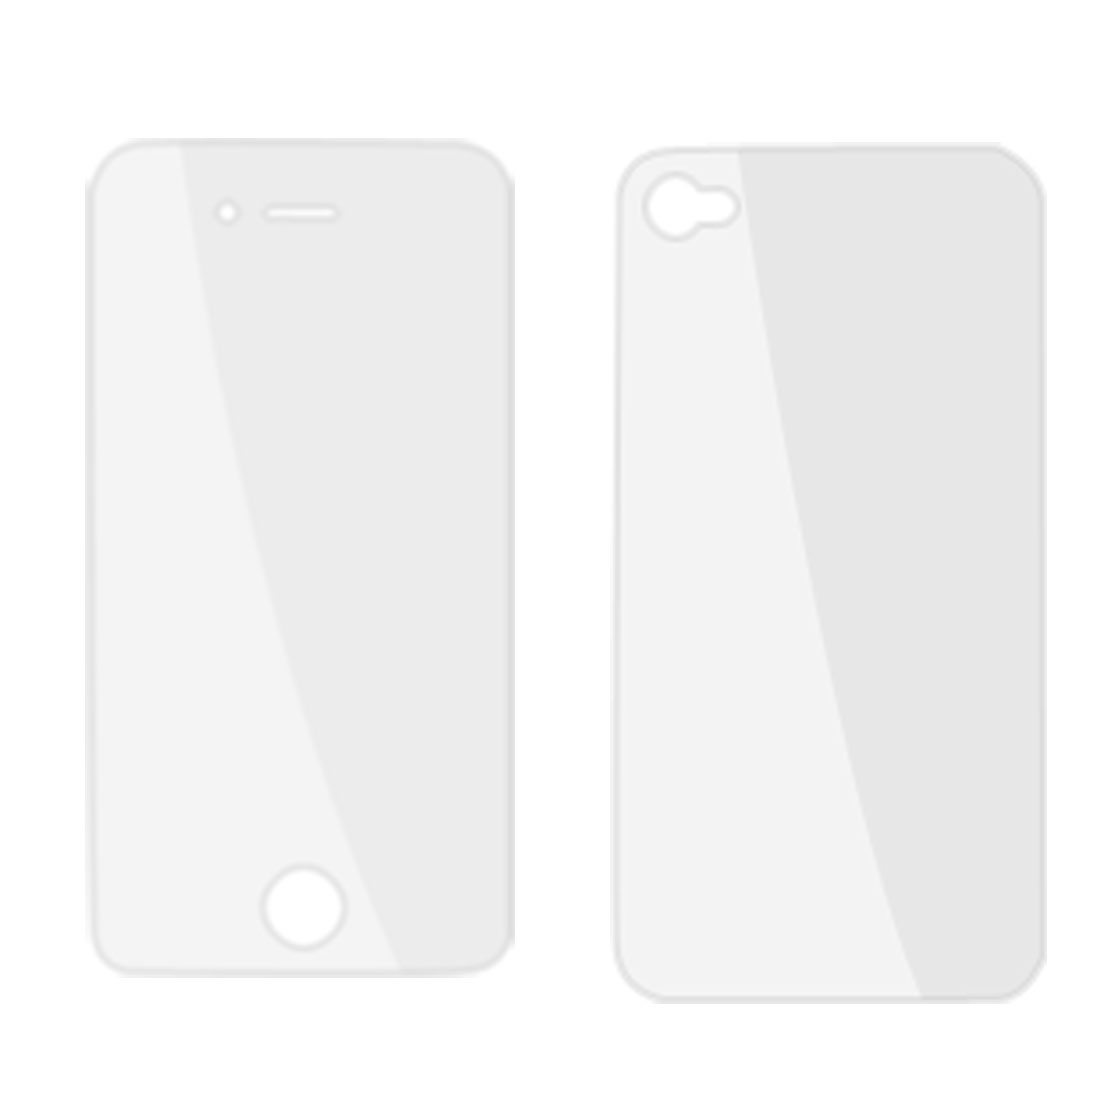 2 x Front Back Clear LCD Screen Guard Film Protector for iPhone 4 4G